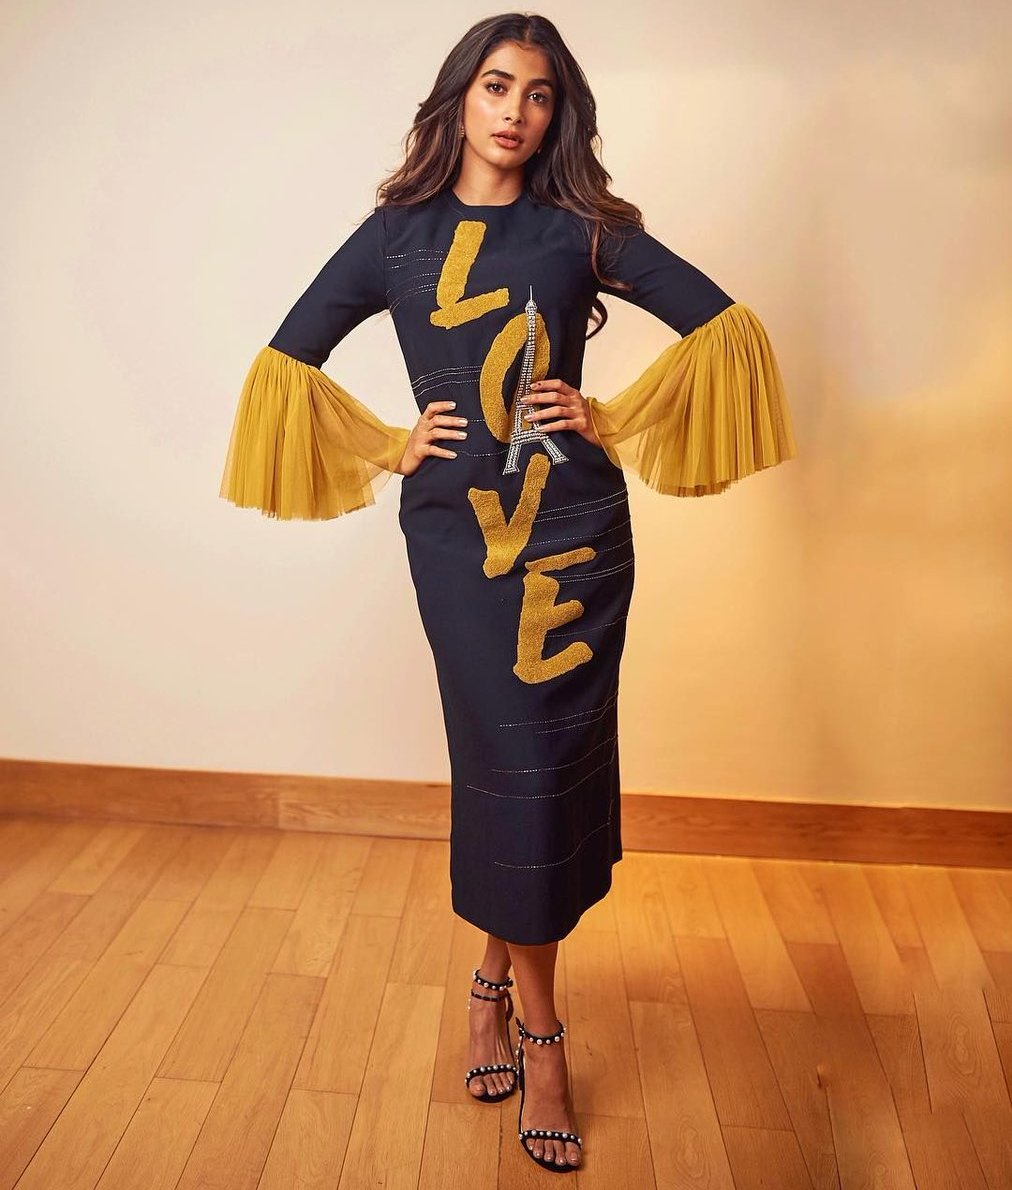 Pooja Hegde for Maharshi promotions!